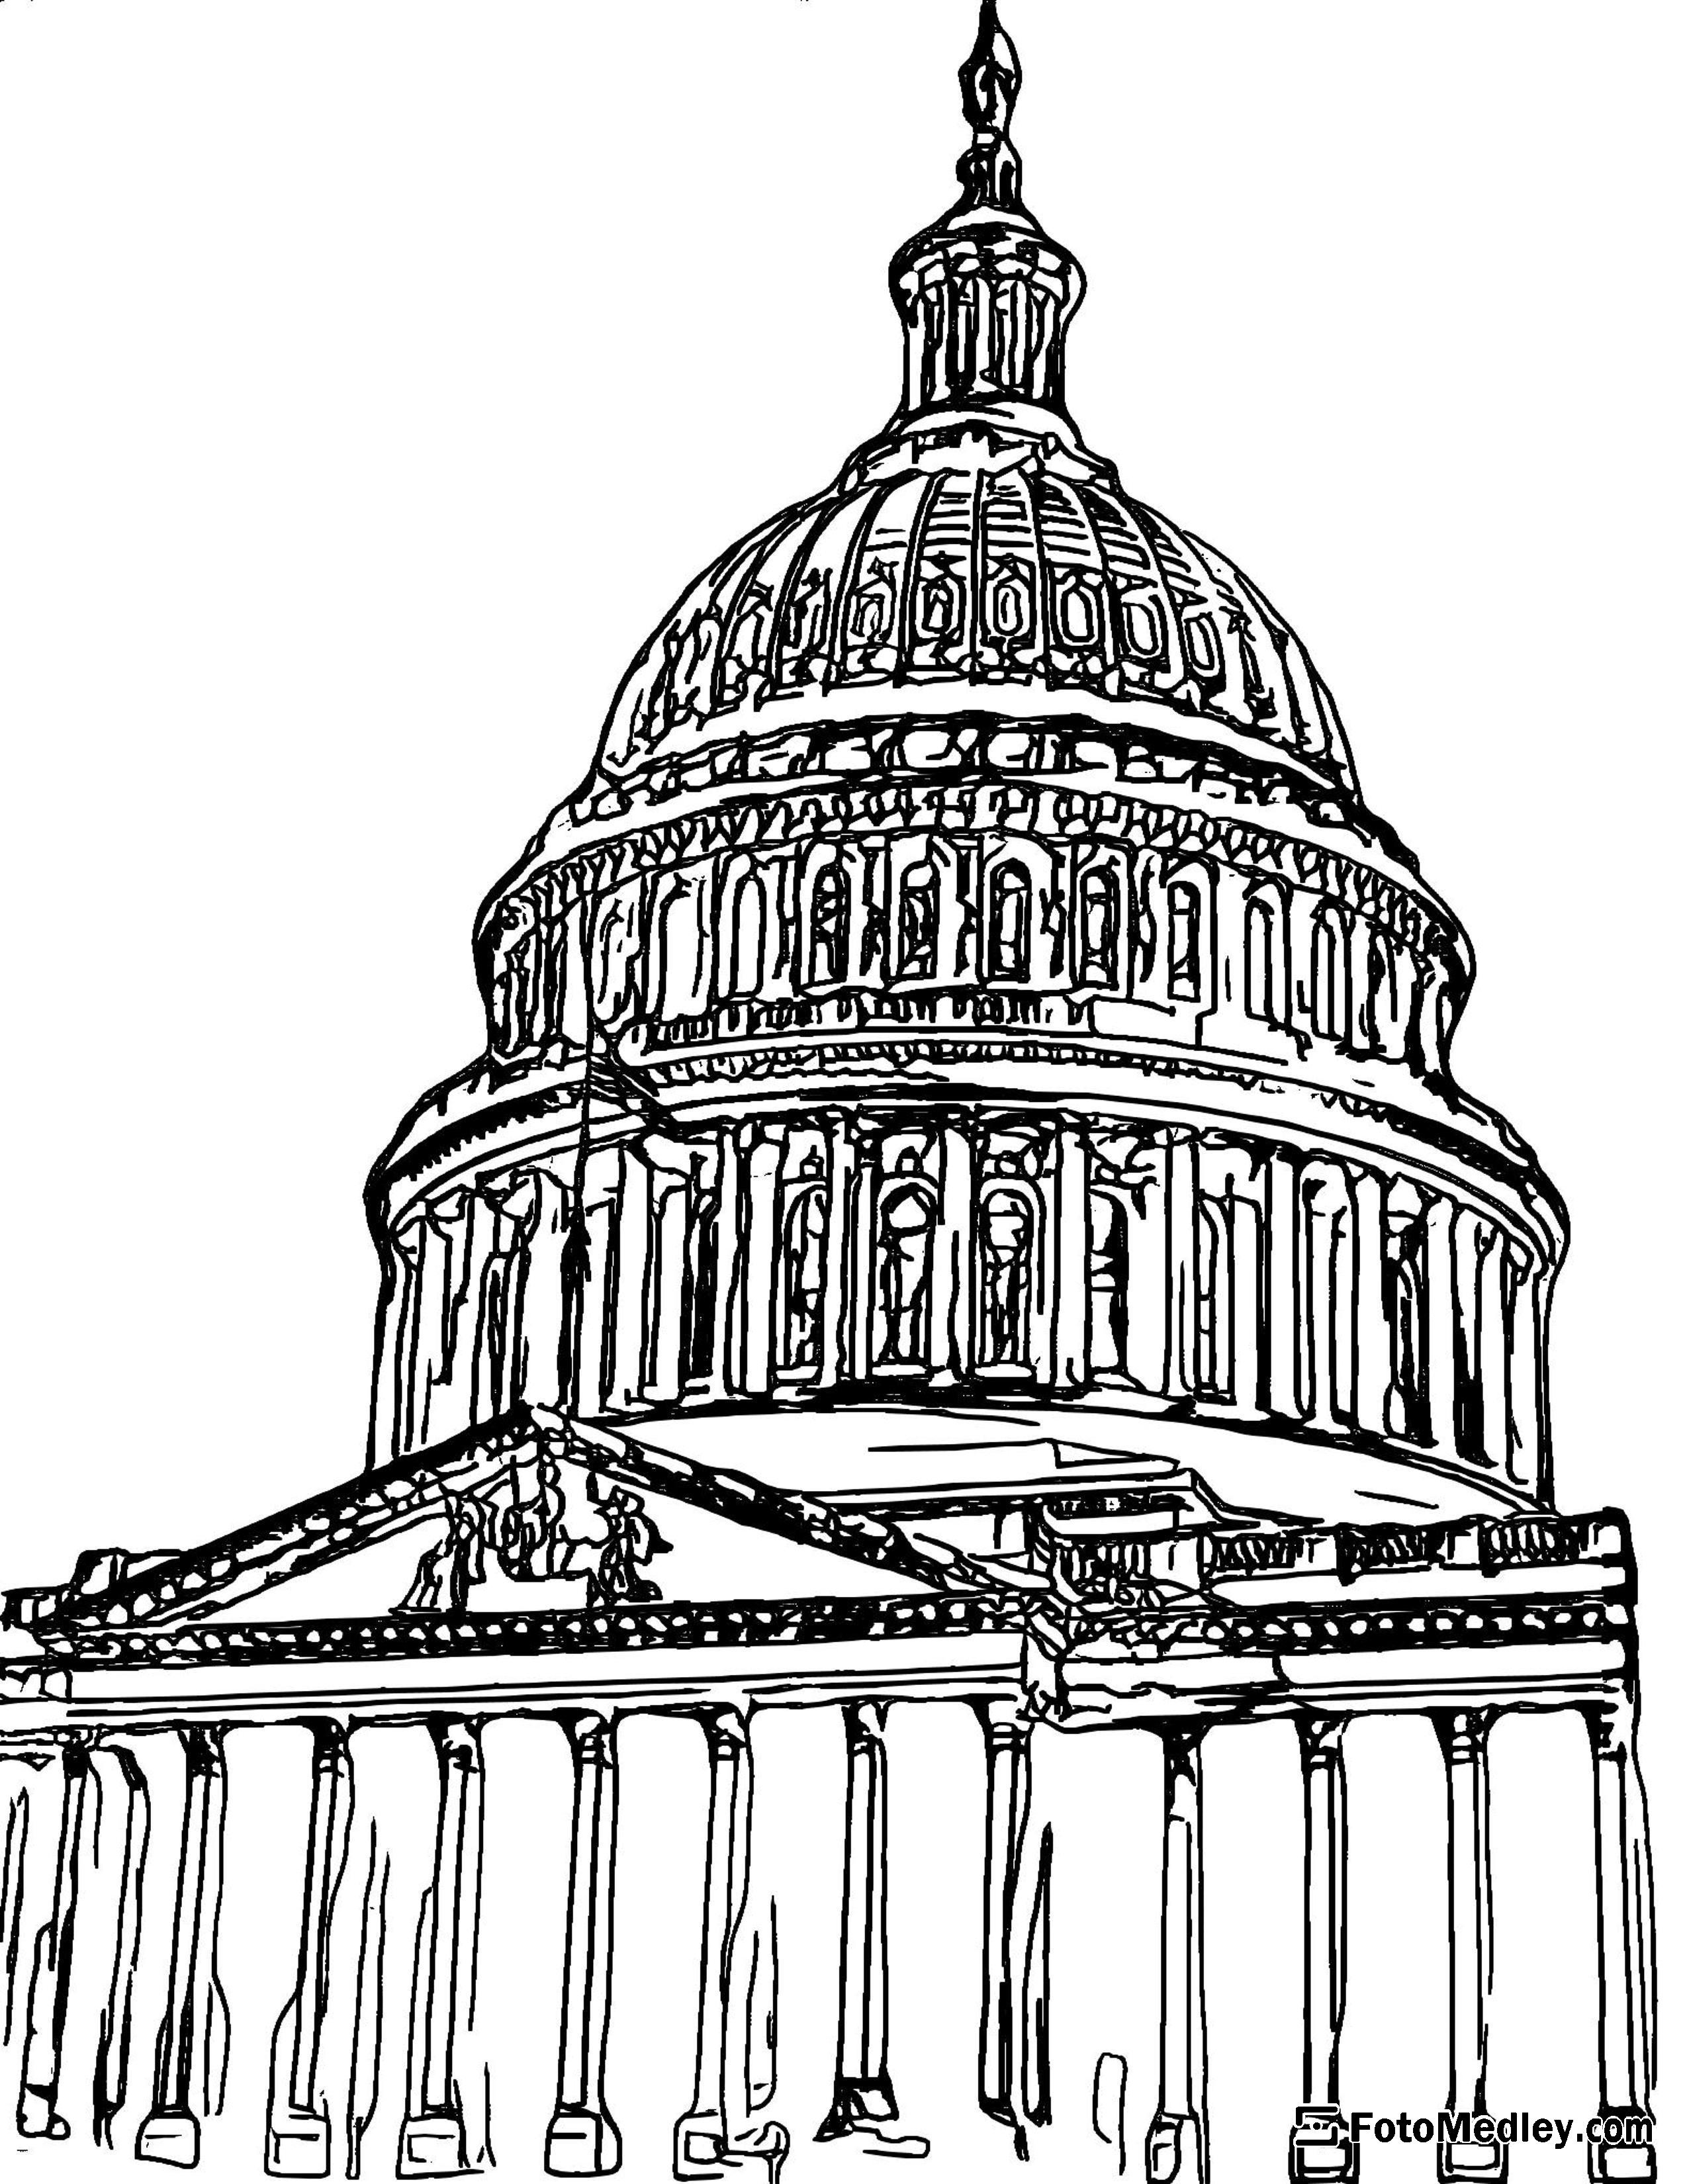 A coloring page of the United States Capitol dome and exterior columns.